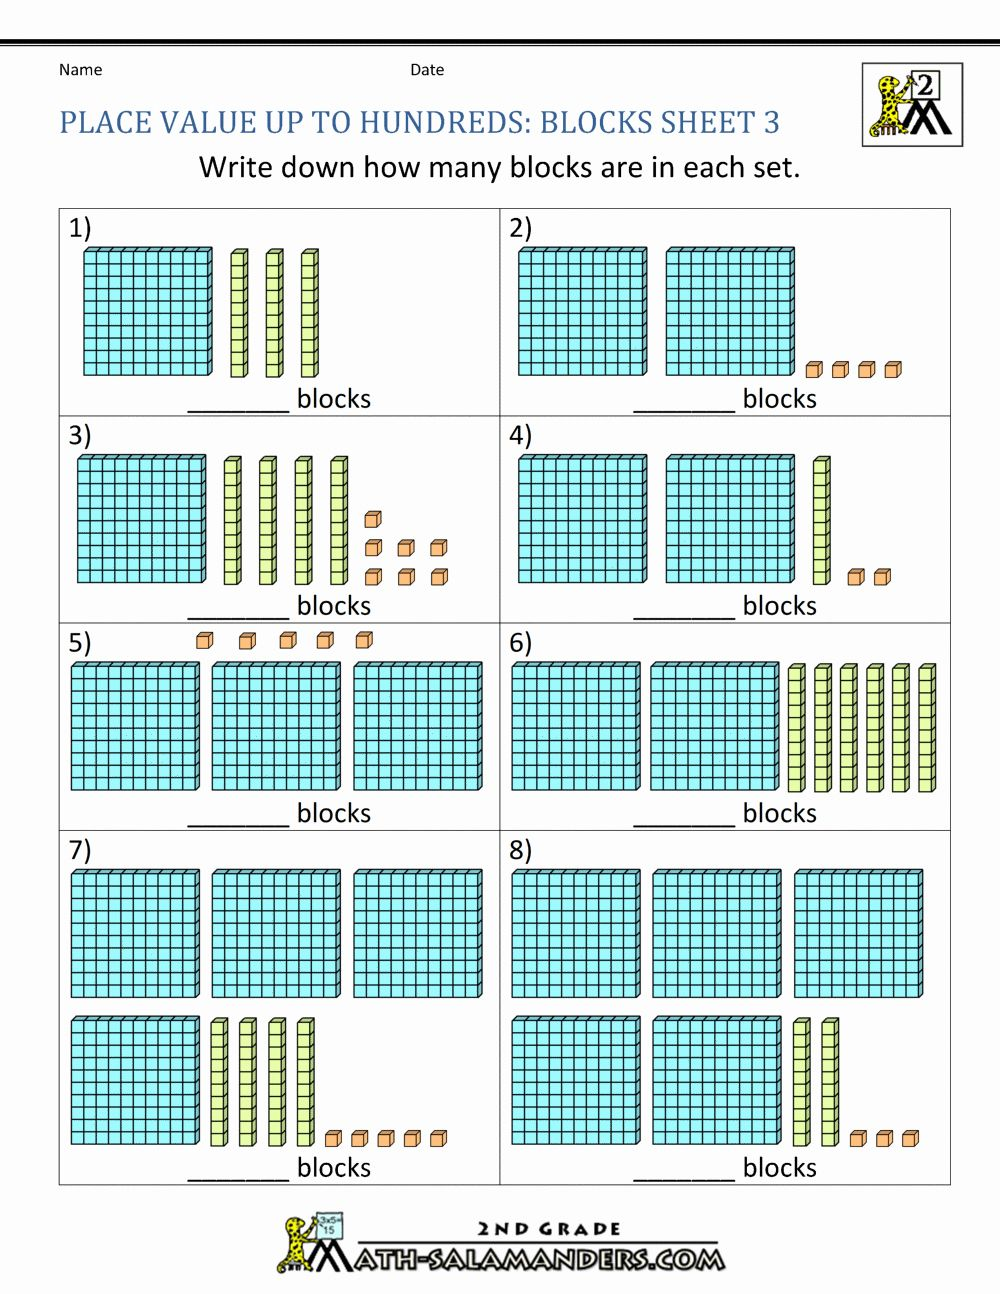 Ones Tens Hundreds Worksheet Fresh Place Value Blocks With 3 Digit Number In 2020 Place Value Blocks Place Values Place Value Worksheets